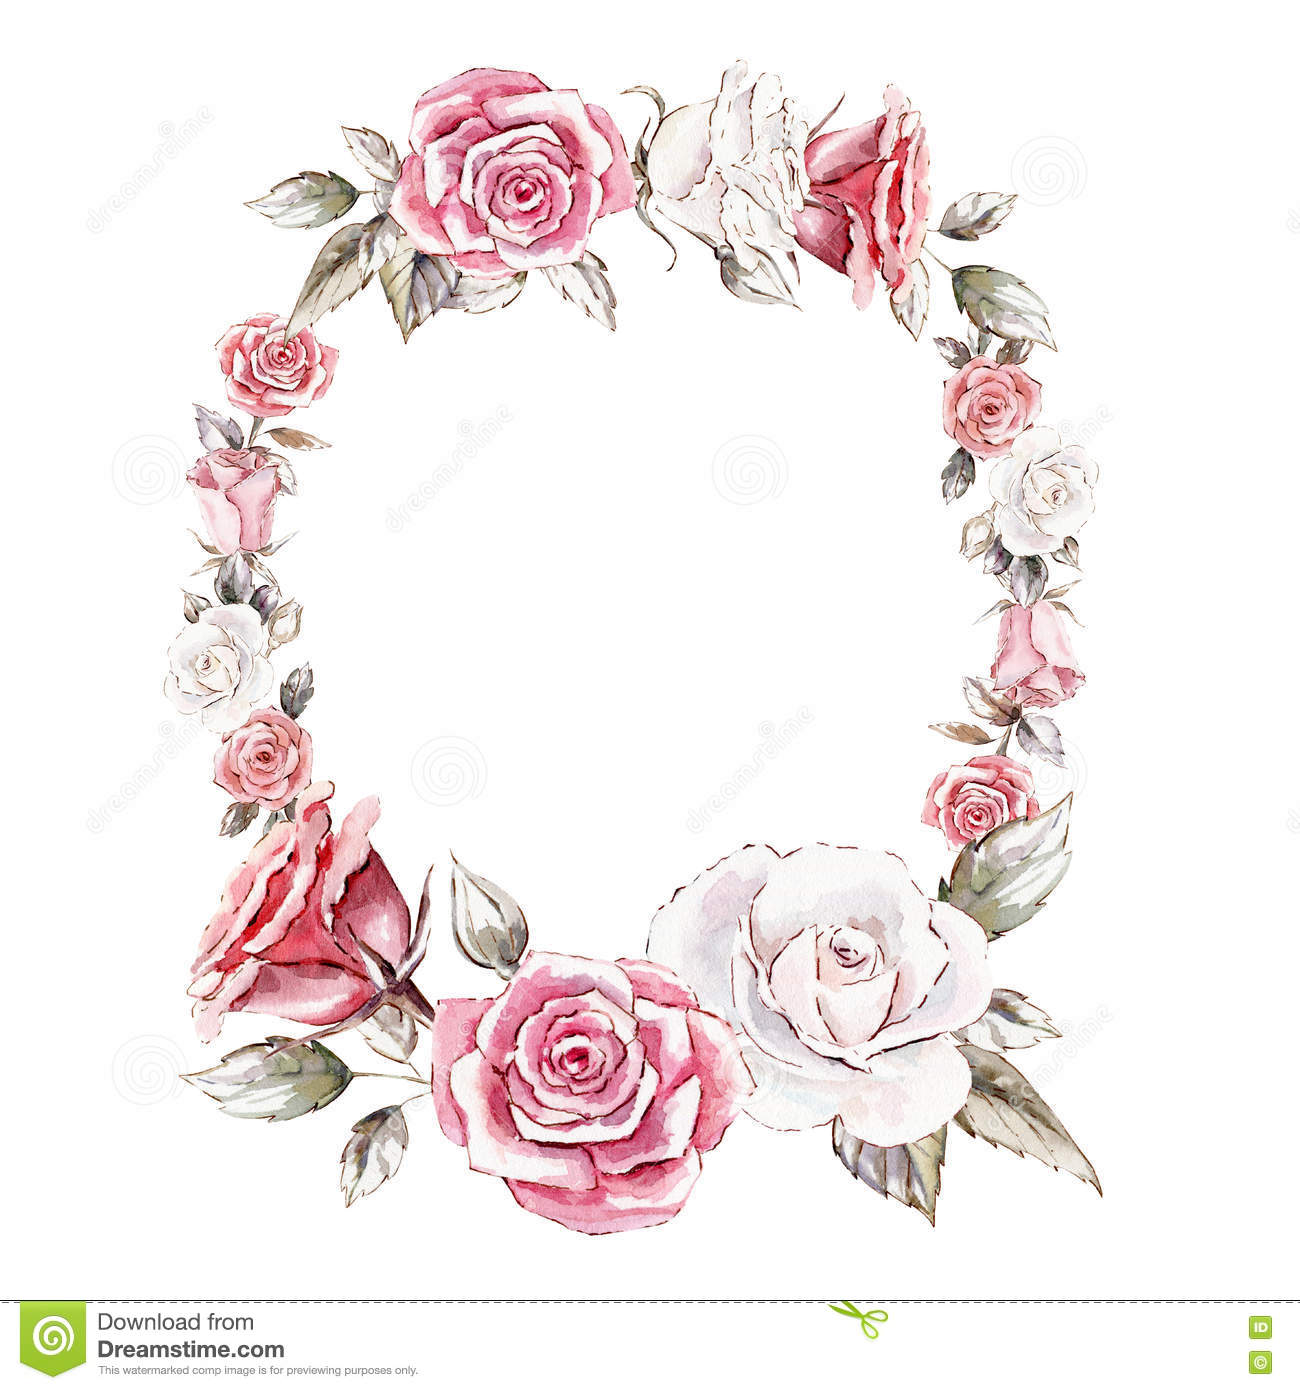 Hand Painted Watercolor Mockup Clipart Template Of Roses Stock.